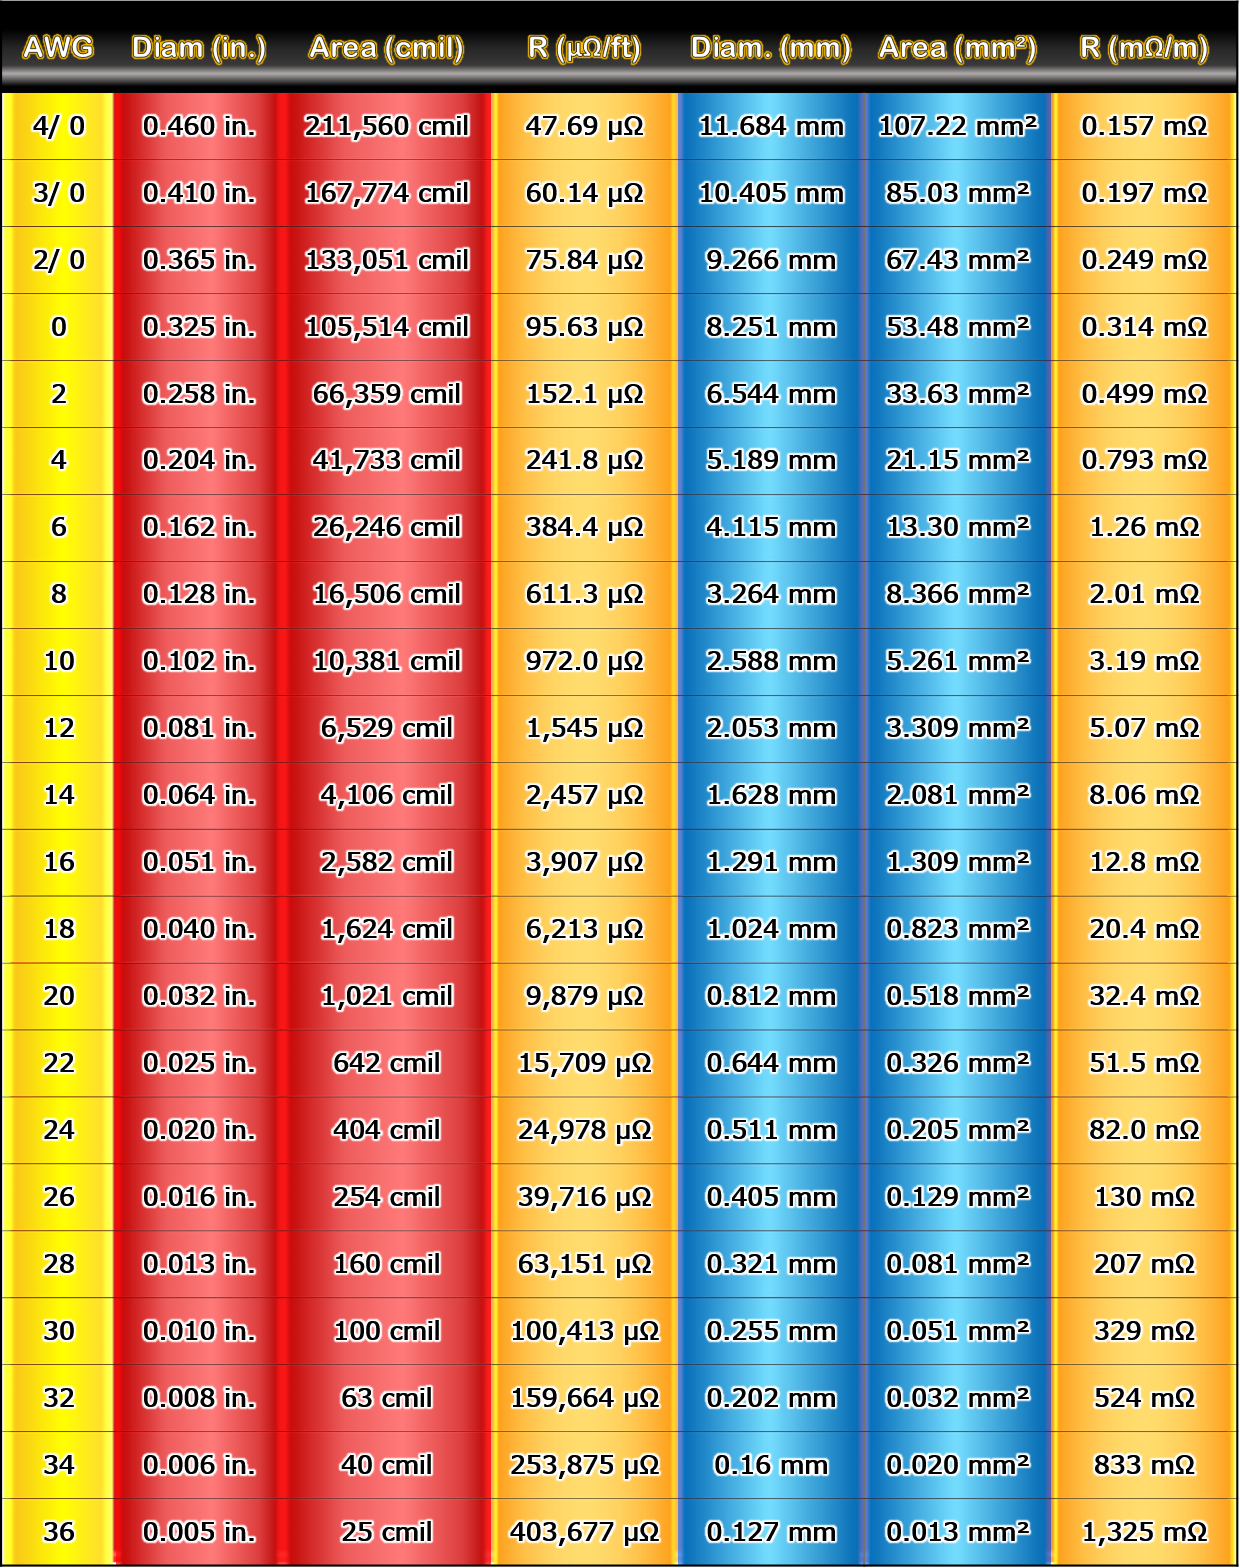 wire gauge reference table diameter area specific resistance [ 1240 x 1568 Pixel ]